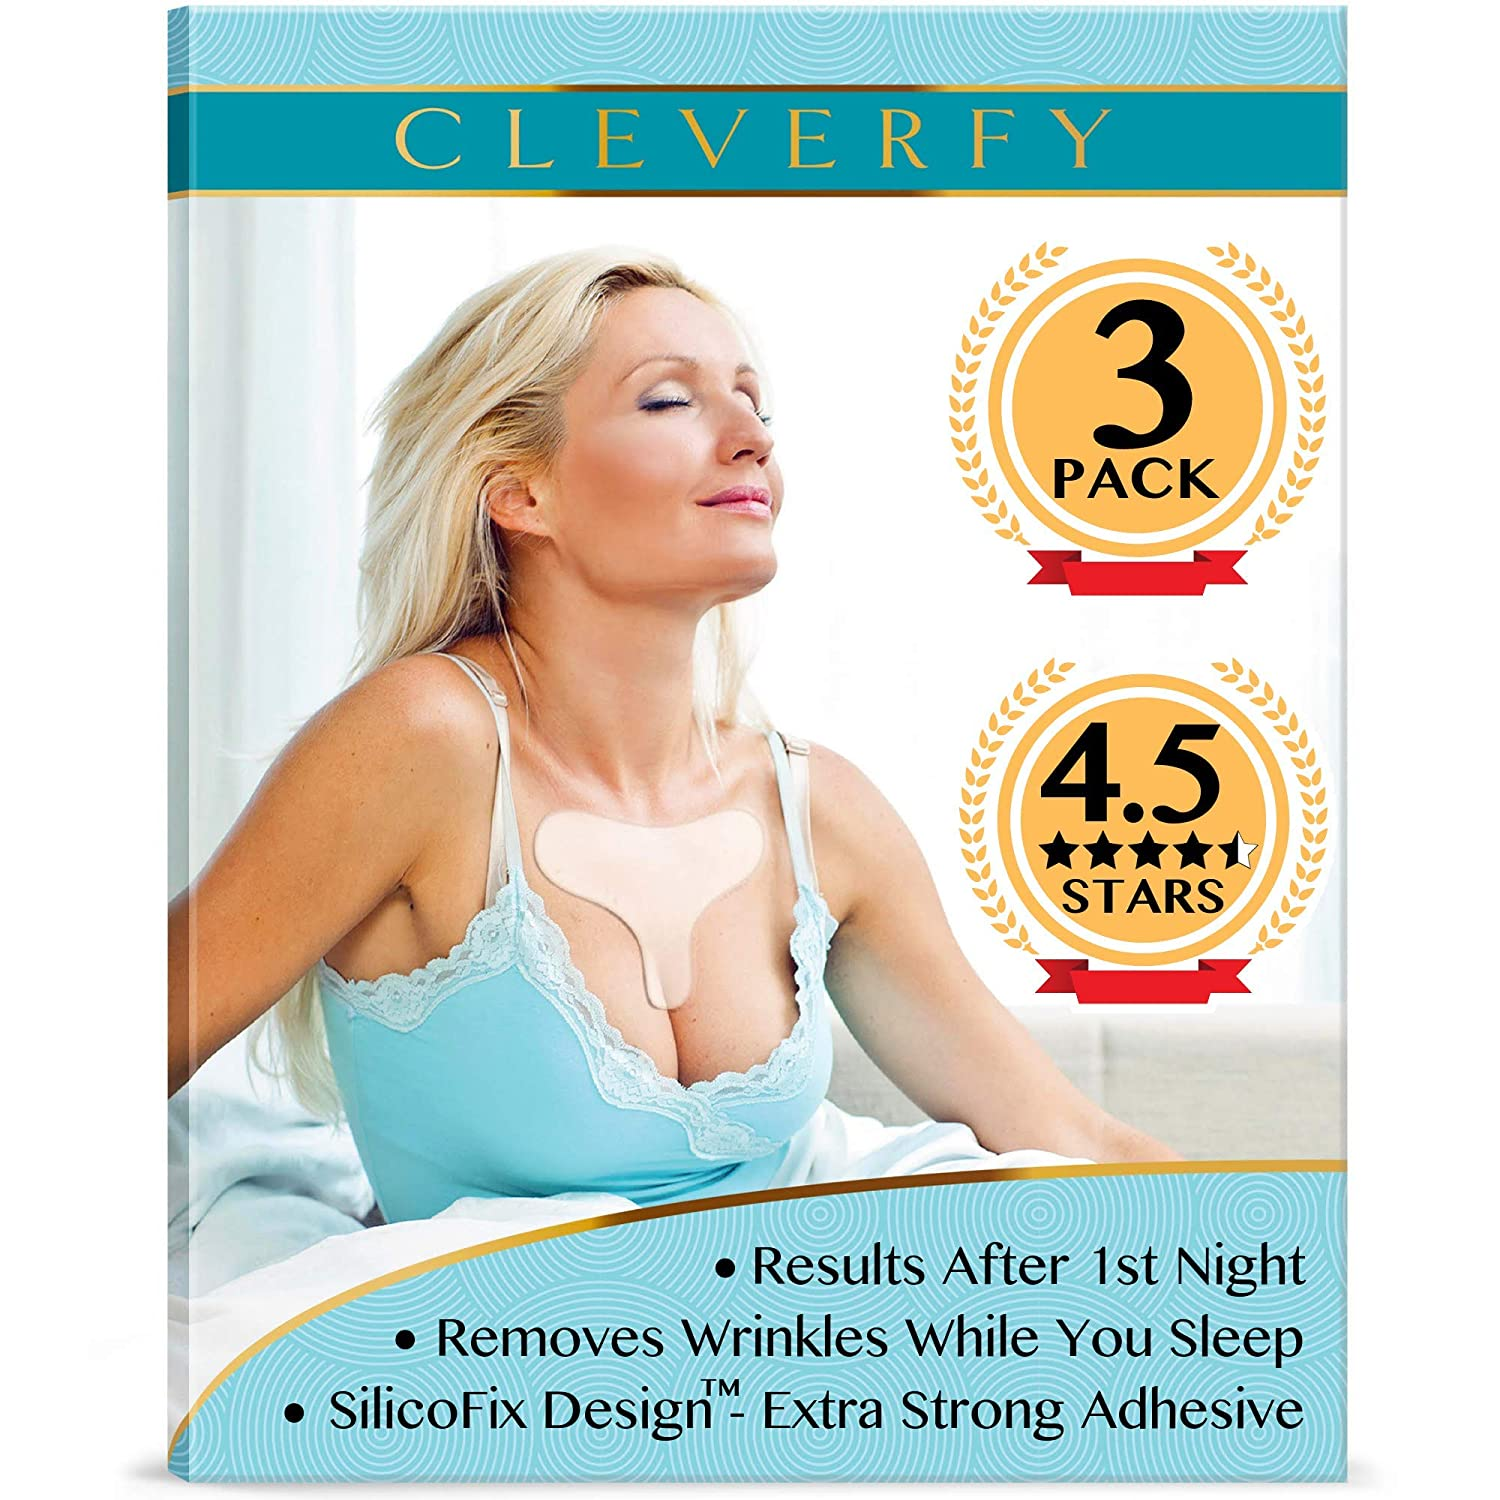 Cleverfy Chest Wrinkle Pads Sleeping (3 Pack T-shape ) - Decollete Anti Wrinkle Chest Pads - Silicone Chest Wrinkle Pad - Anti Wrinkle Pads - Silicon Chest Wrinkle Pads for Chest Wrinkle Prevention: Beauty